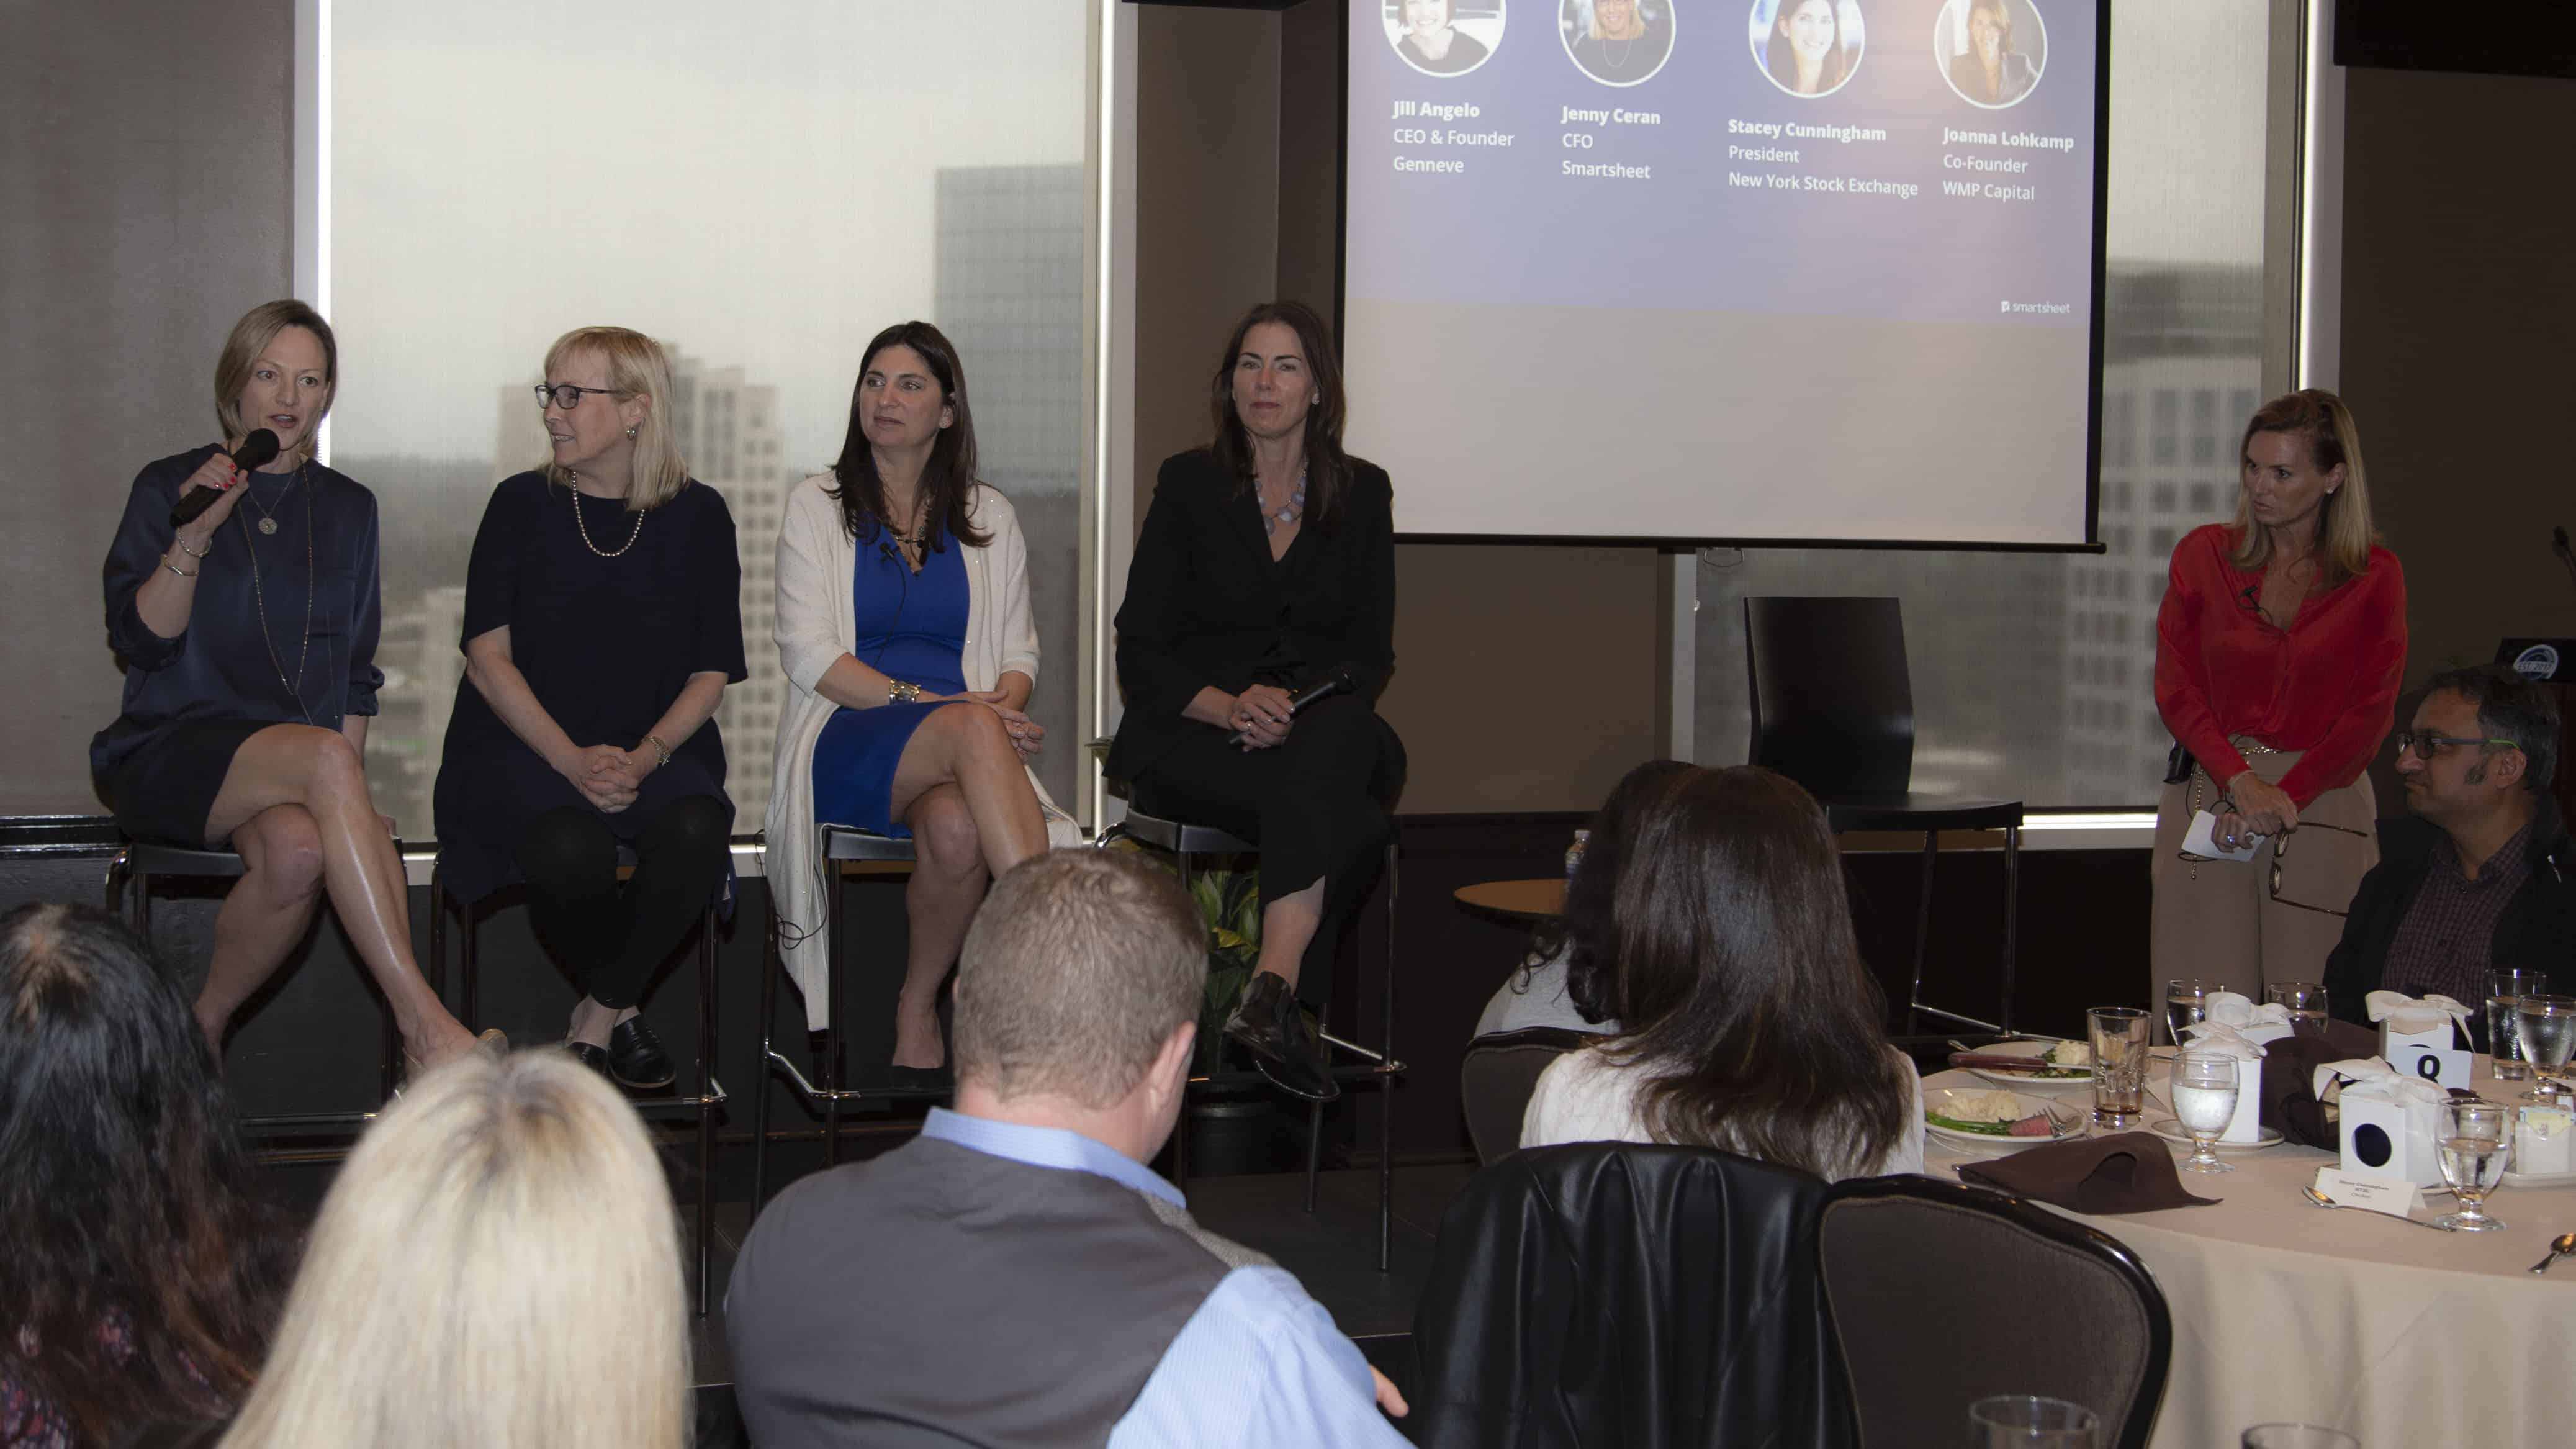 CEO Jill Angelo, CFO Jenny Ceran, President of the NYSE Stacey Cunningham, and Joanna Lohkamp on women in leadership panel discussion, hosted by Smartsheet